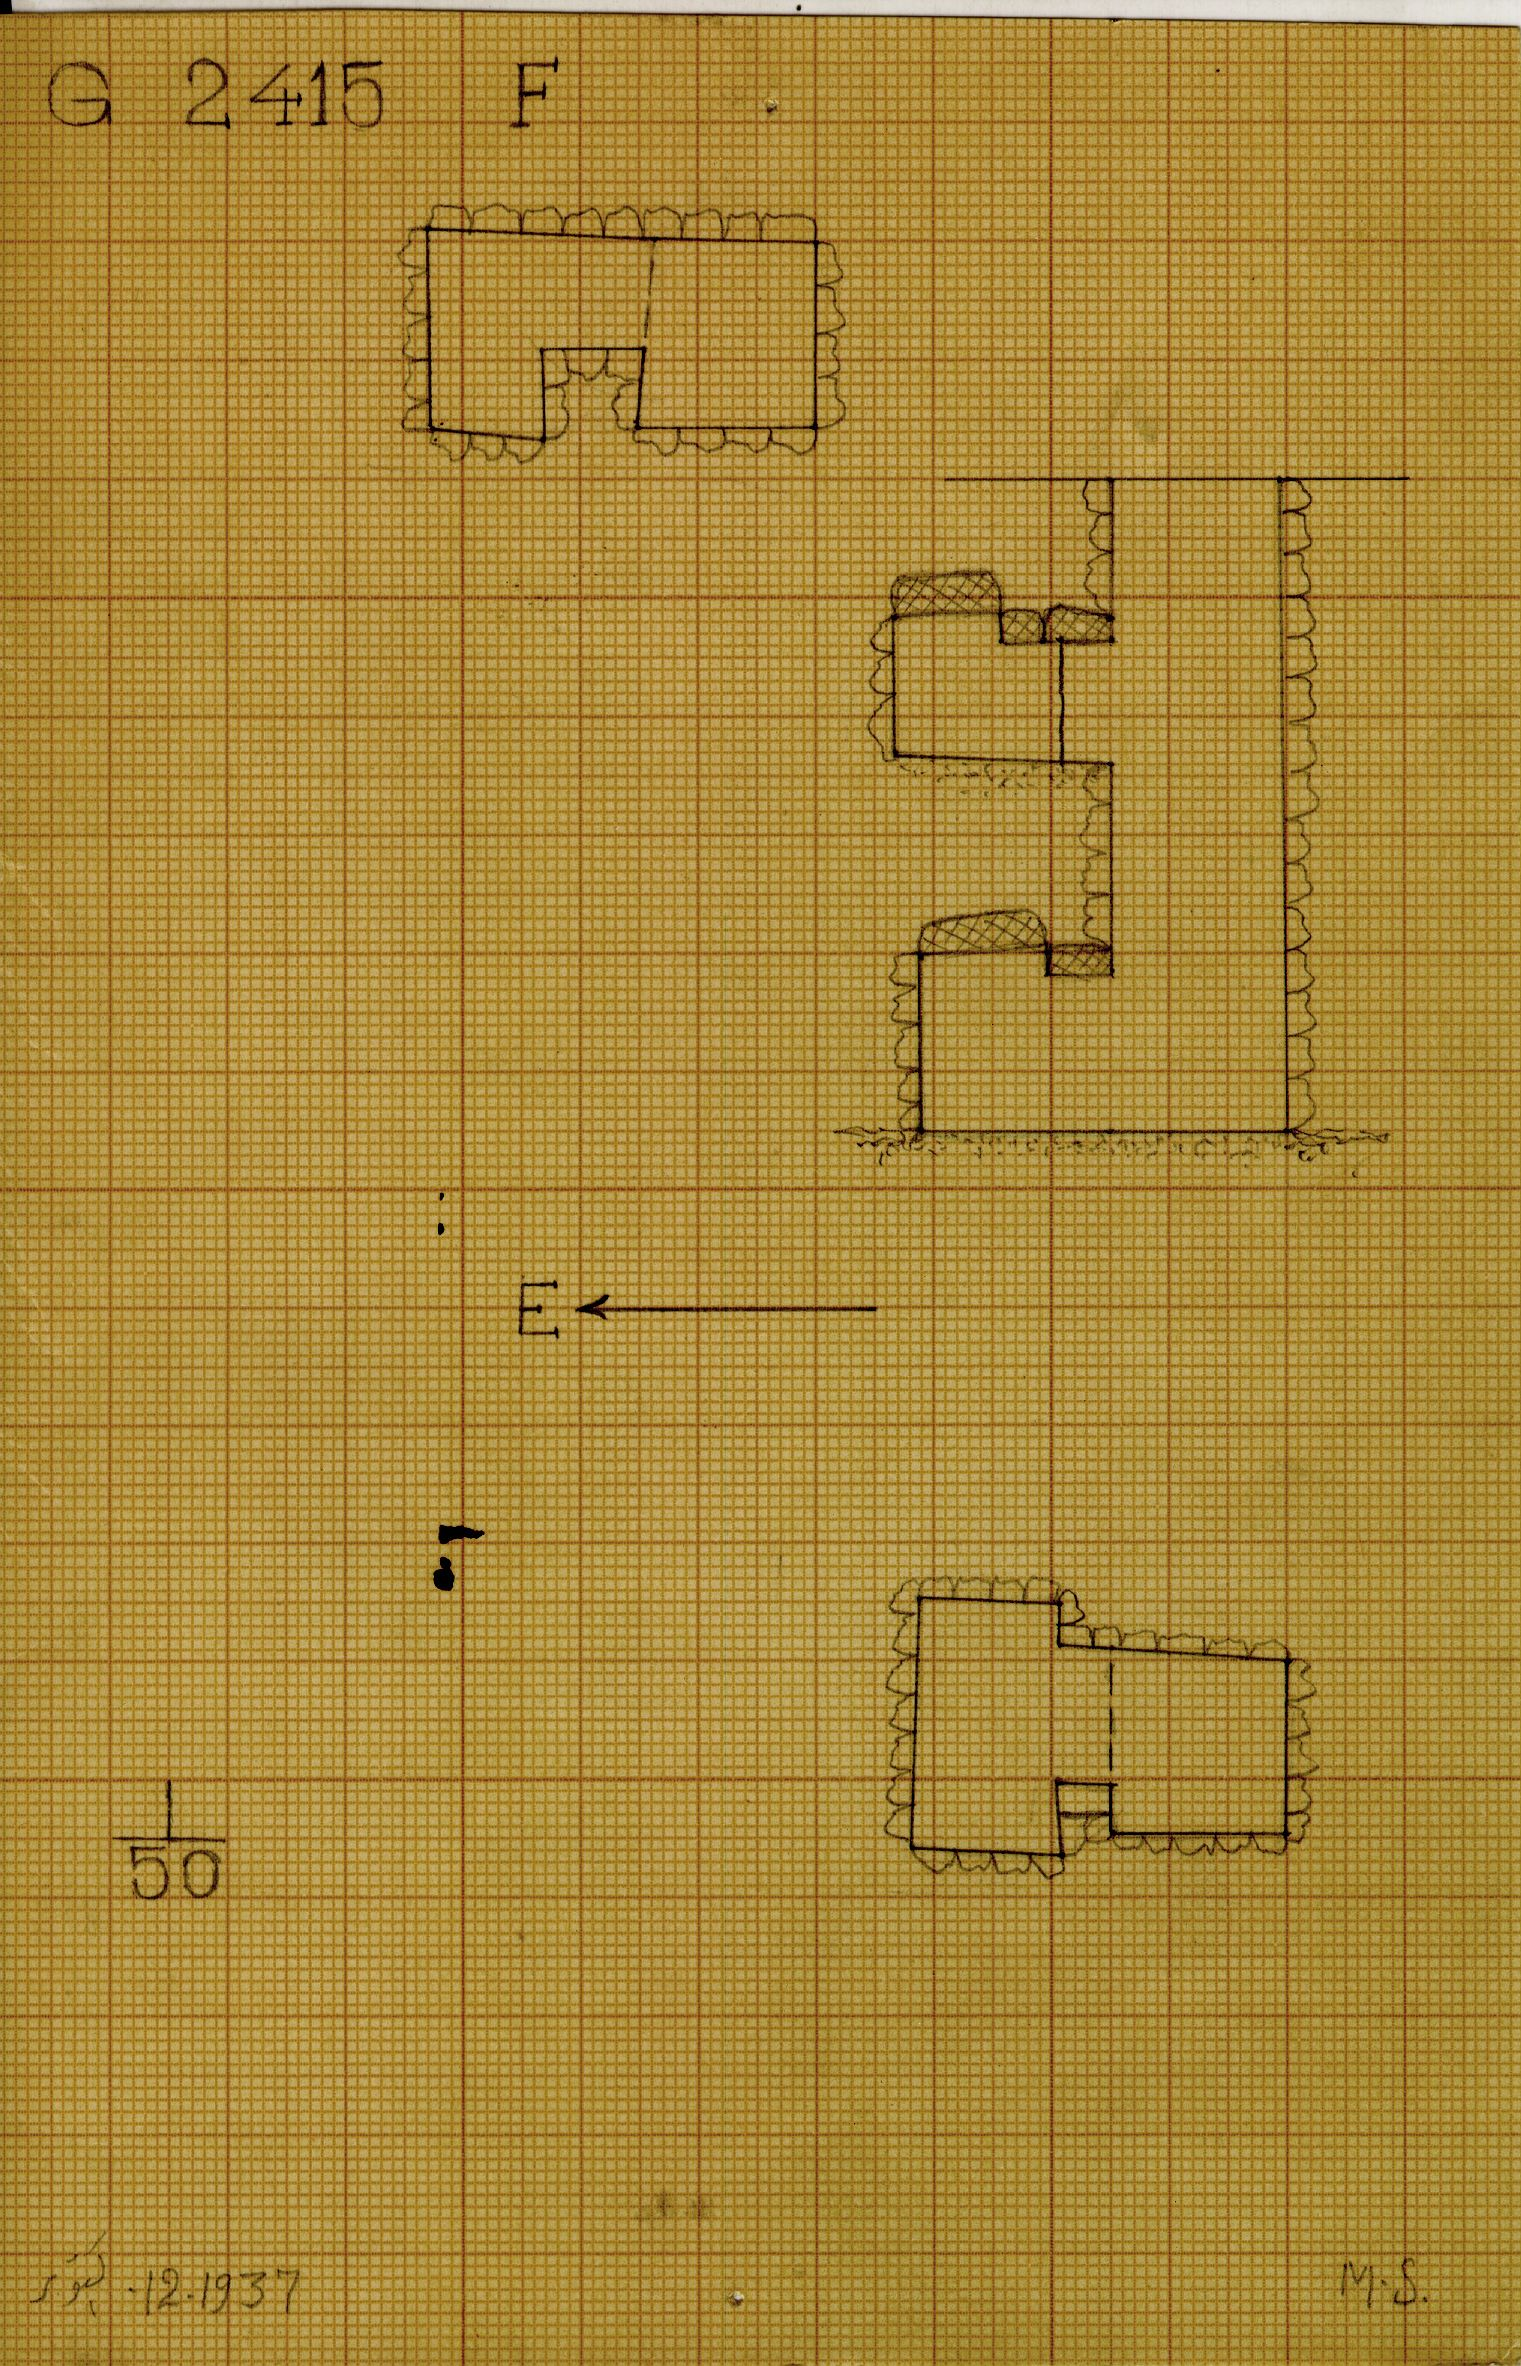 Maps and plans: G 2415, Shaft F